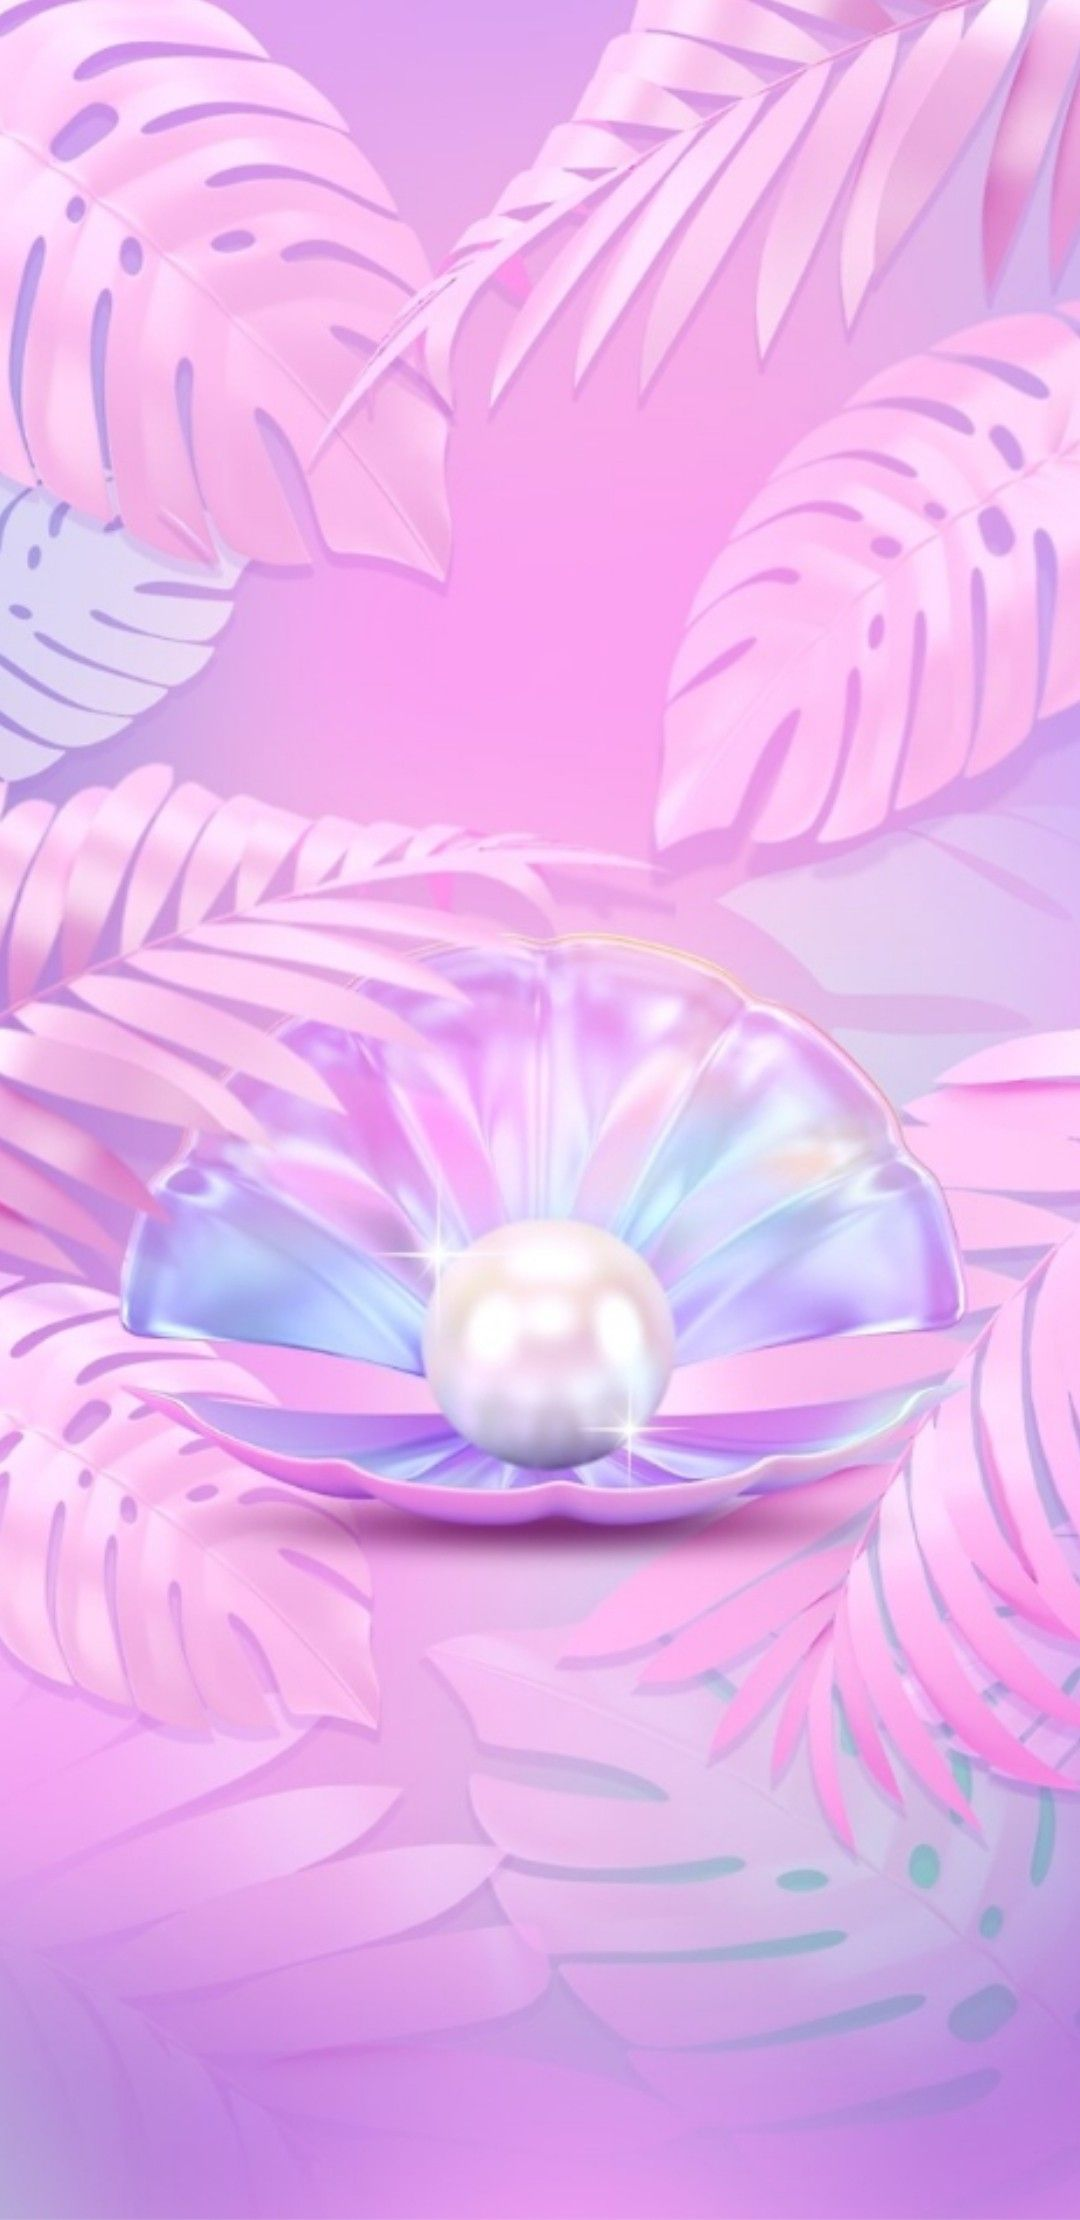 Pin By 𝓕𝓪𝓽𝓲𝓶𝓪 𝓕𝓻𝓪𝓰𝓪 On Girly Droid Wallpapers Holographic Wallpapers Holo Wallpapers Wallpaper